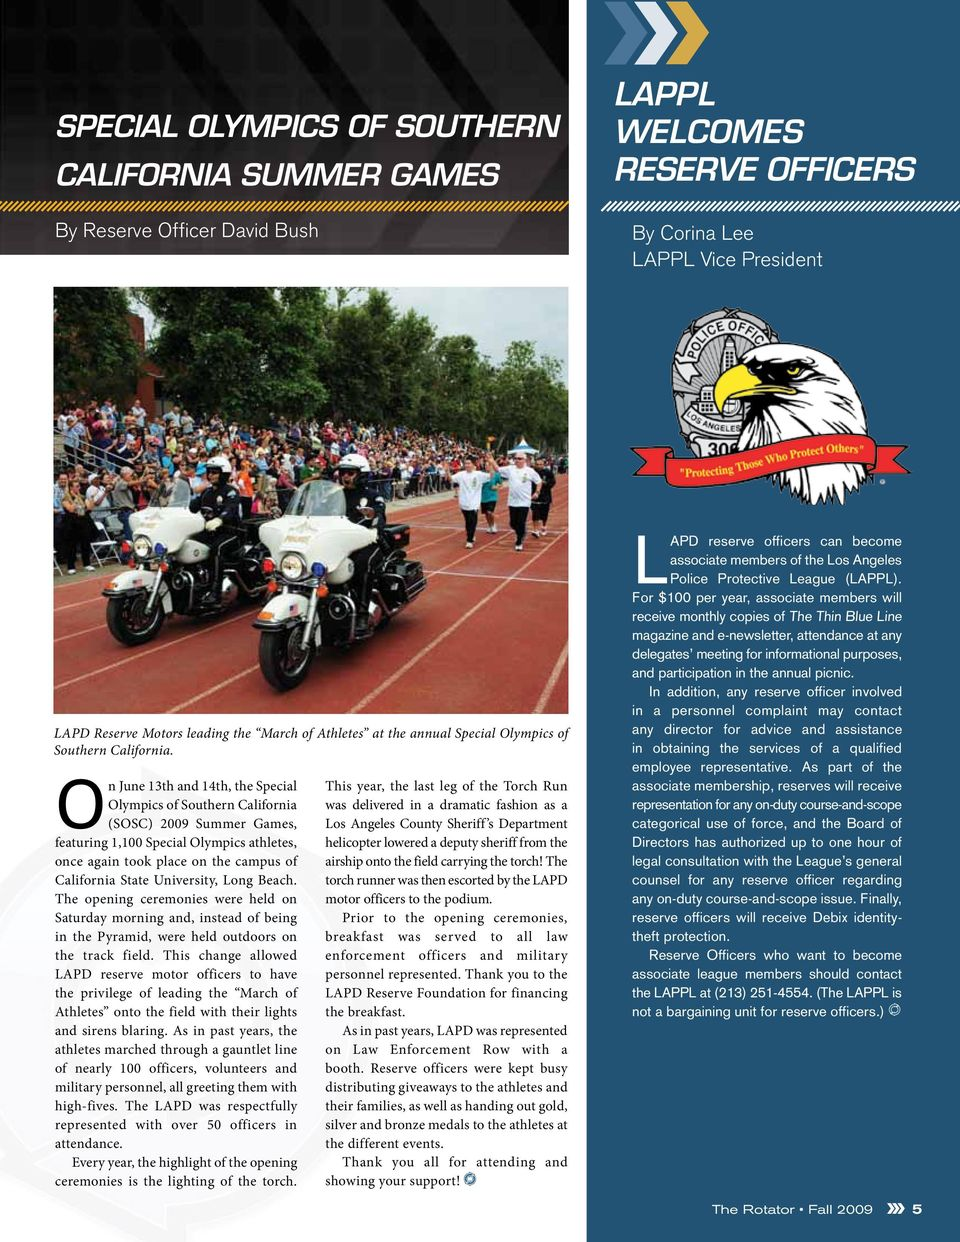 On June 13th and 14th, the Special Olympics of Southern California (SOSC) 2009 Summer Games, featuring 1,100 Special Olympics athletes, once again took place on the campus of California State